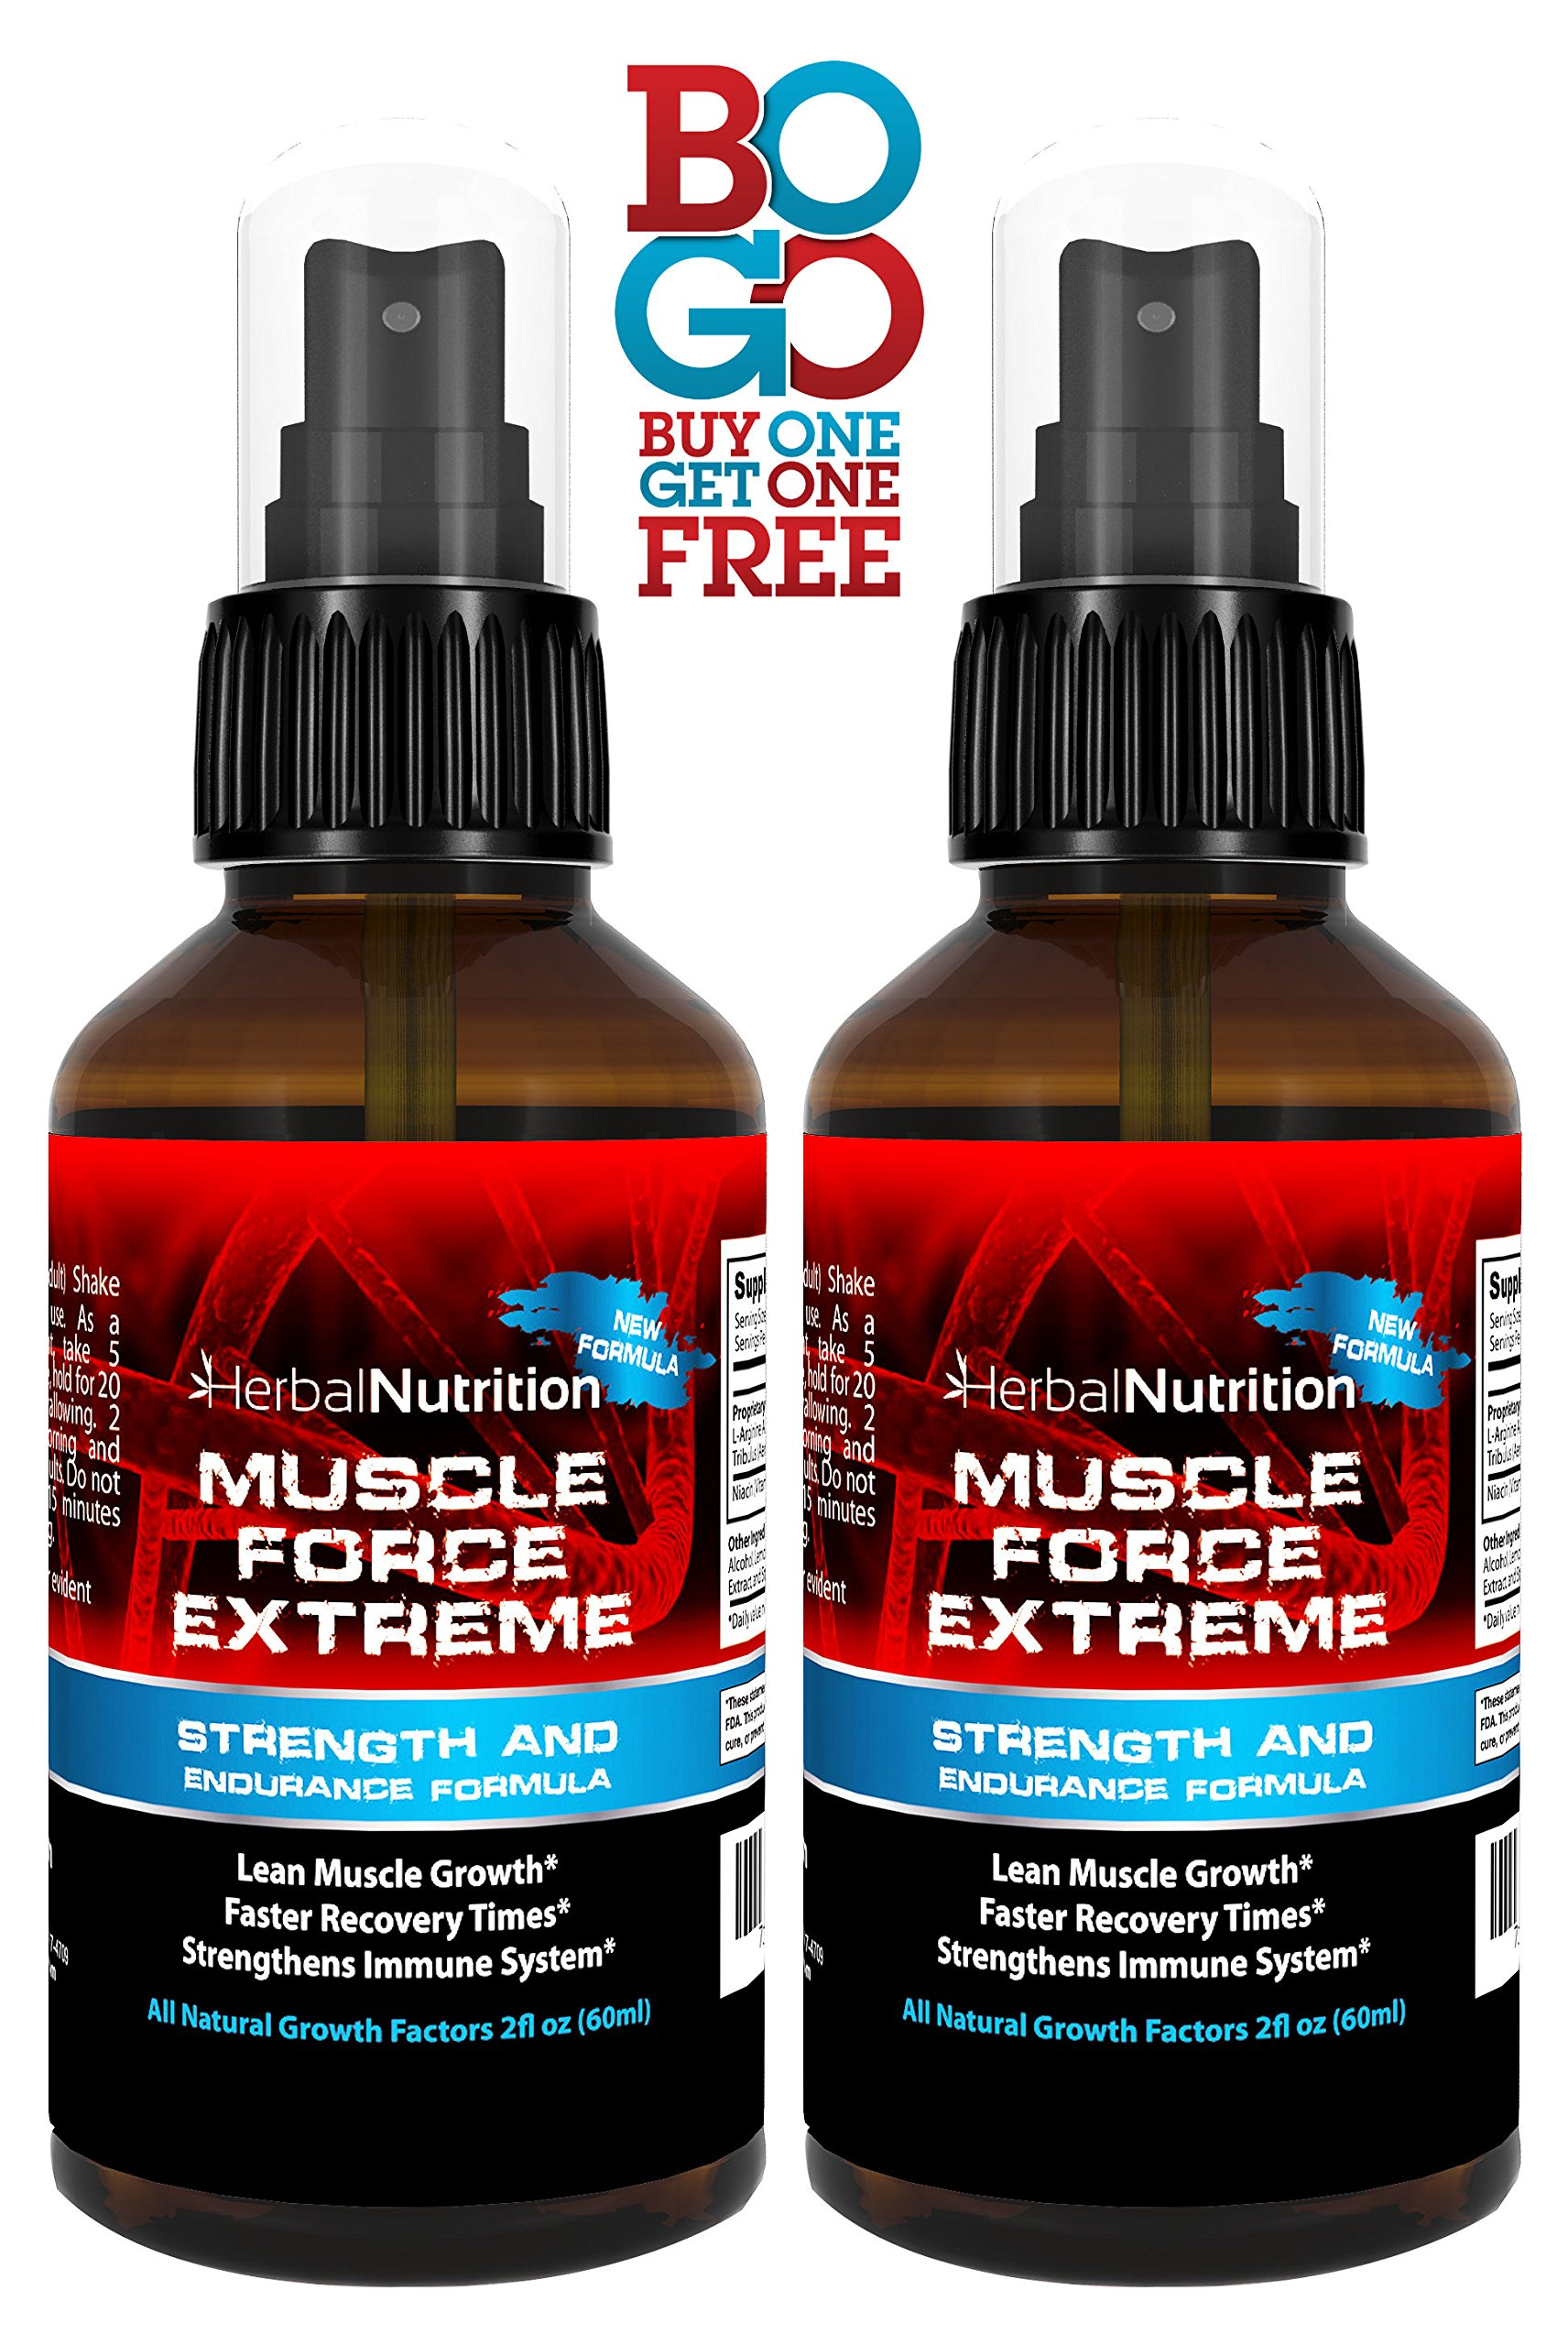 #1 Rated MUSCLE FORCE EXTREME! | Two Bottle Pack | 400mg Proprietary Formula | Our Strongest Strength and Endurance Spray! | Improves Strength and Recovery | Two 2oz Spray Bottles | Free Shipping